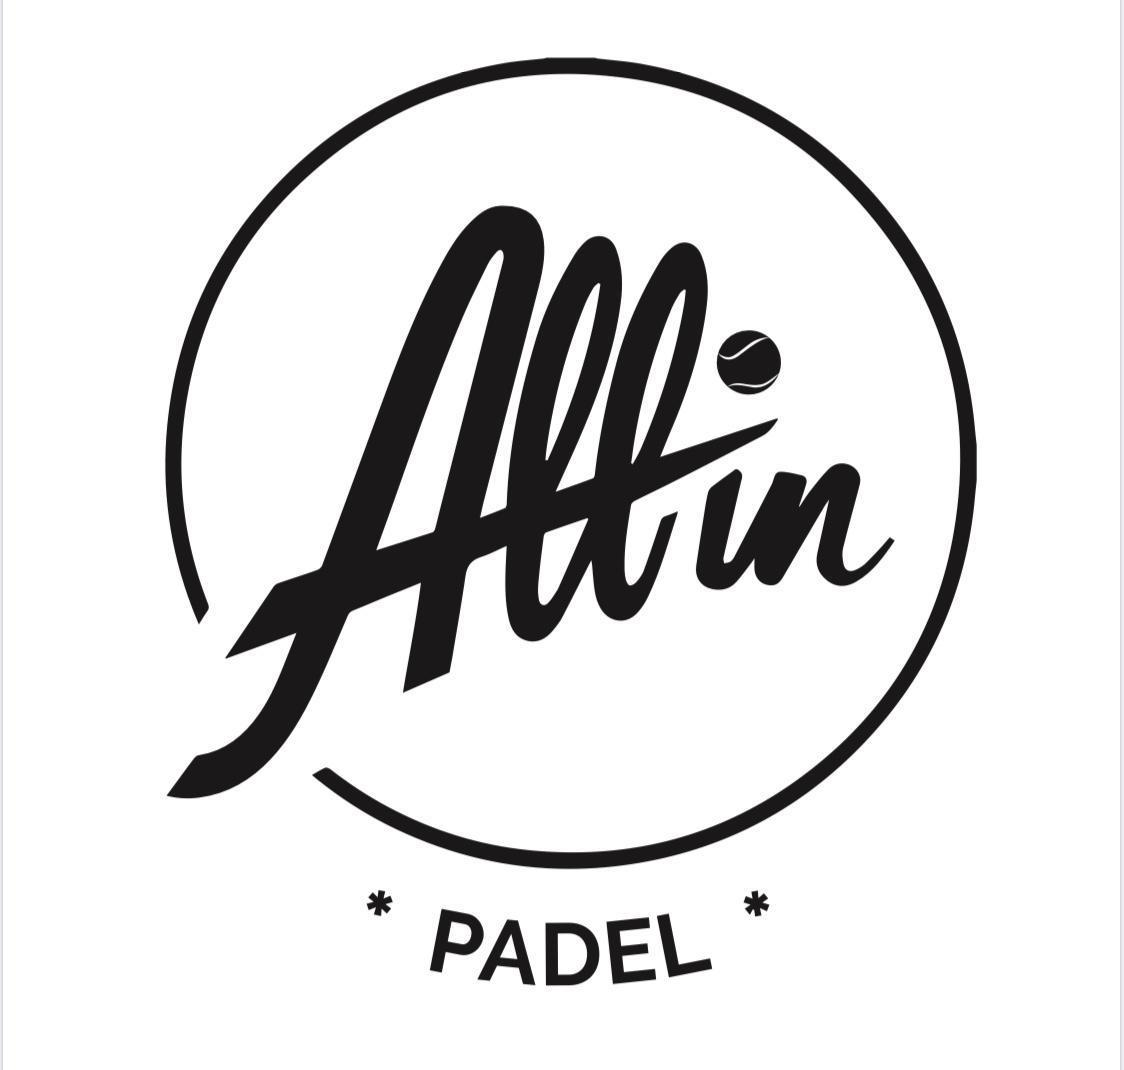 Job offers: All In Padel recruits